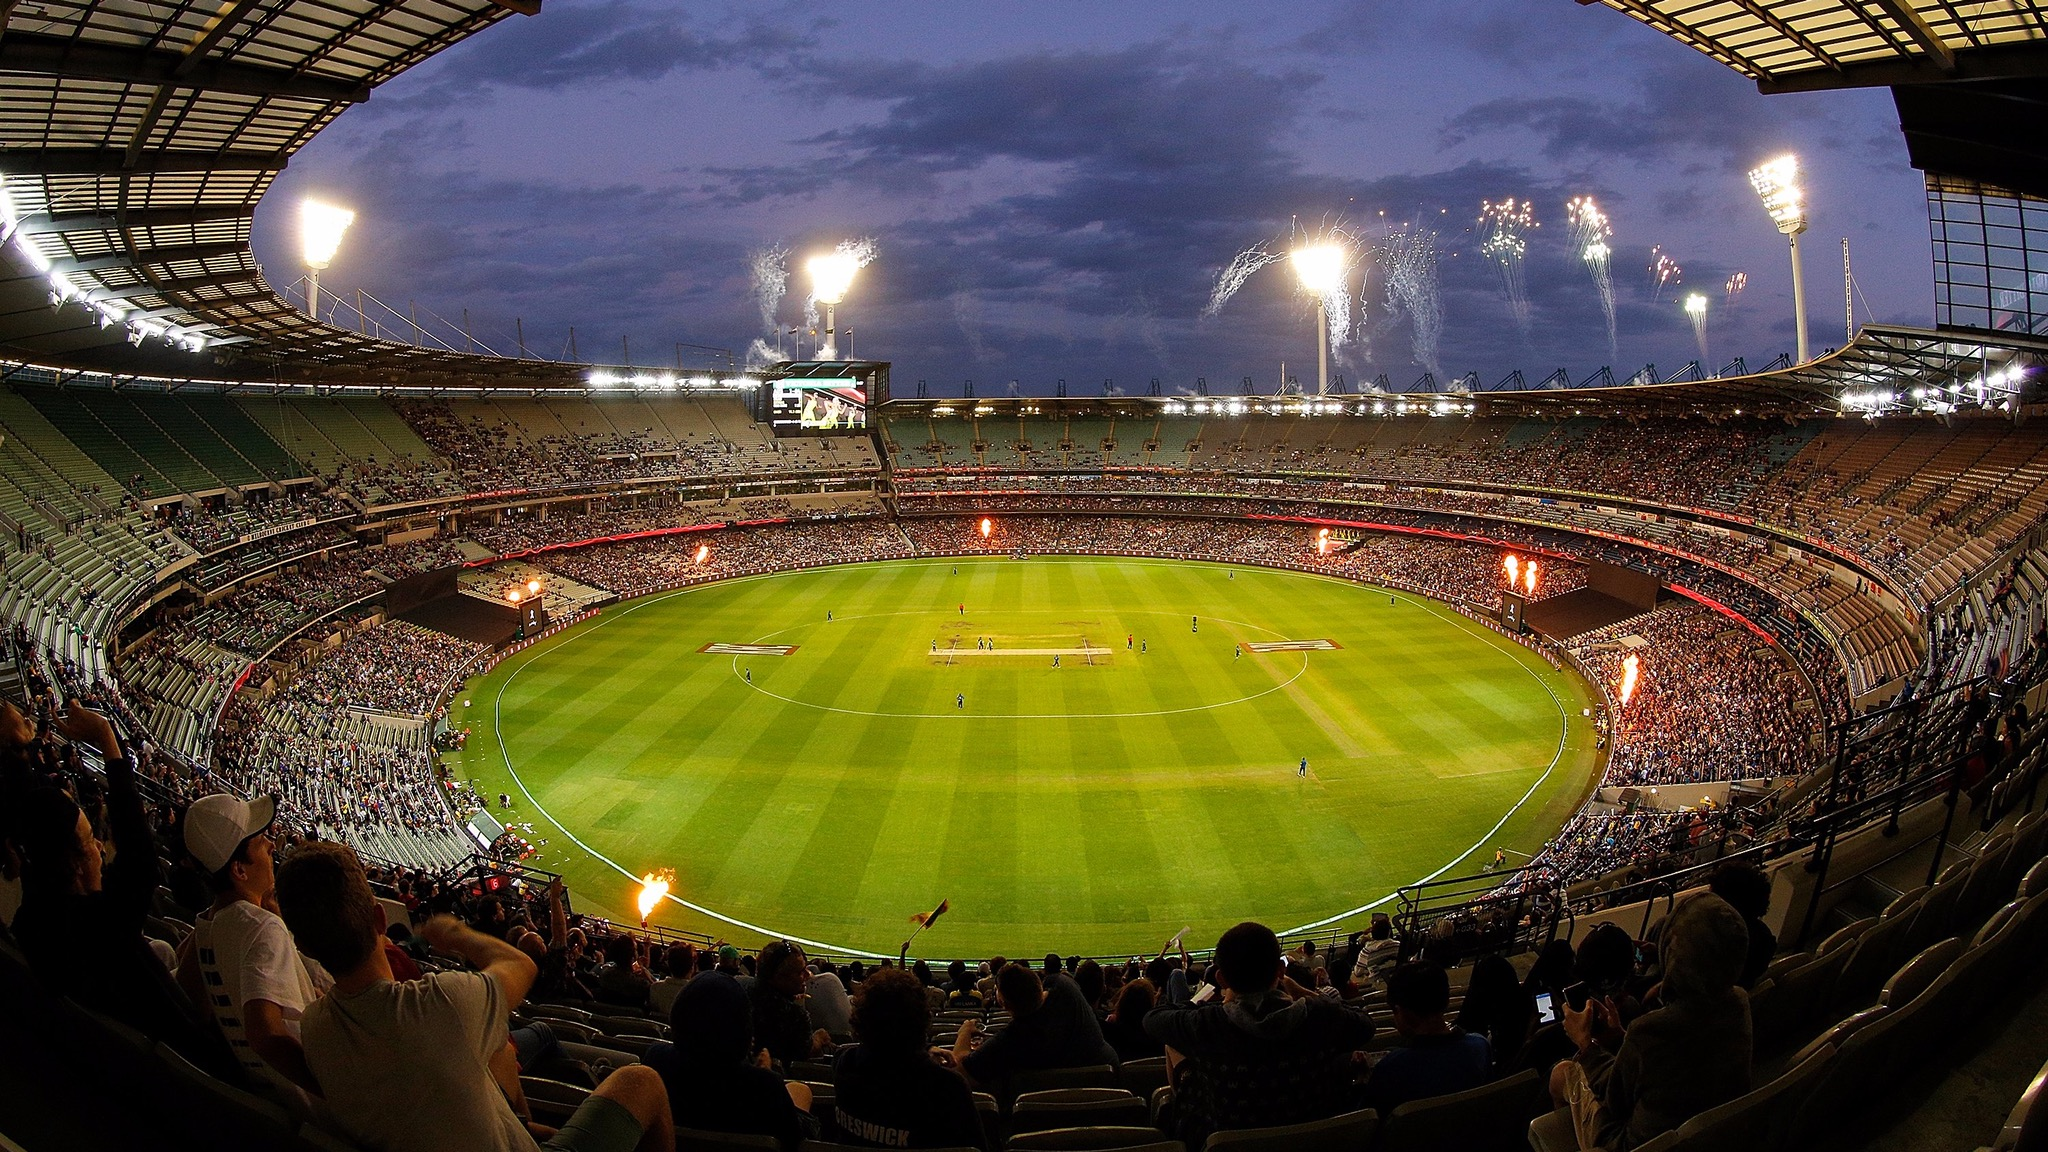 KFC T20 INTL vs Sri Lanka, Feb 2017 at the MCG. Photo: Daniel Pockett/Getty Images